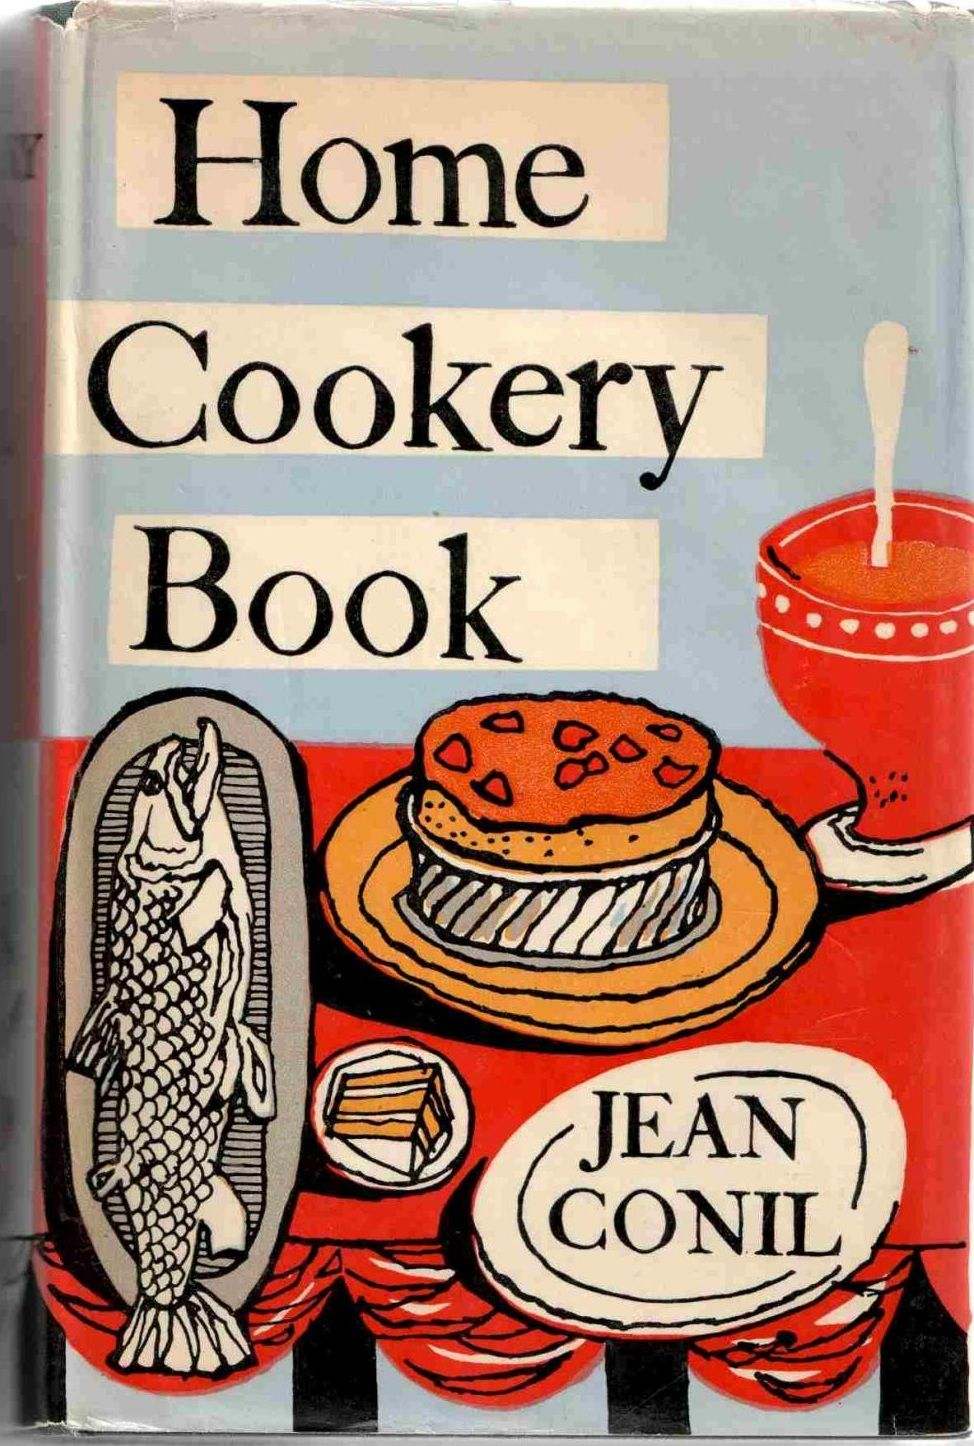 Home Cookery Book